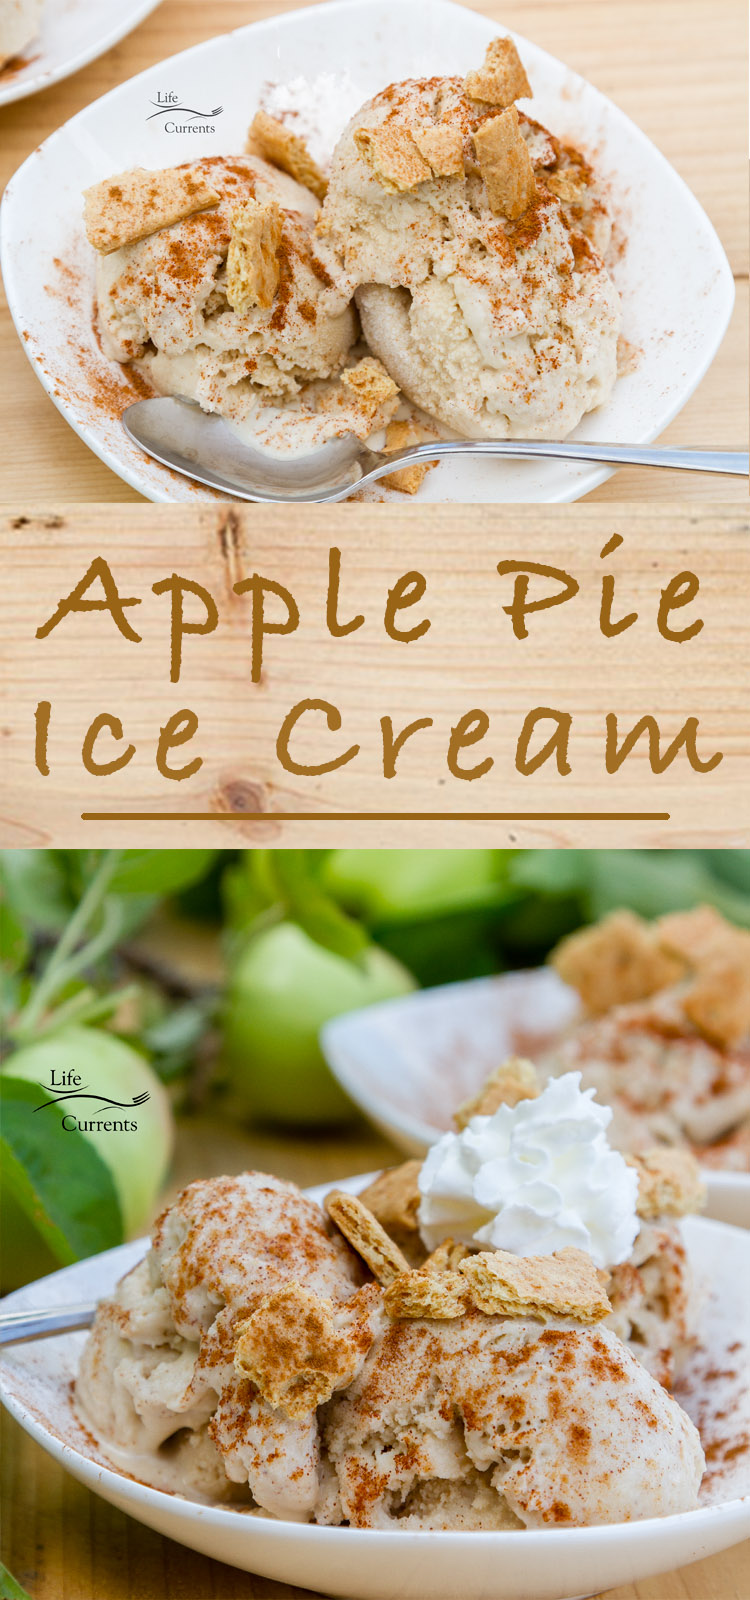 have your apple pie and your a la mode all in one delicious frozen treat that's as classic and American as Apple Pie!